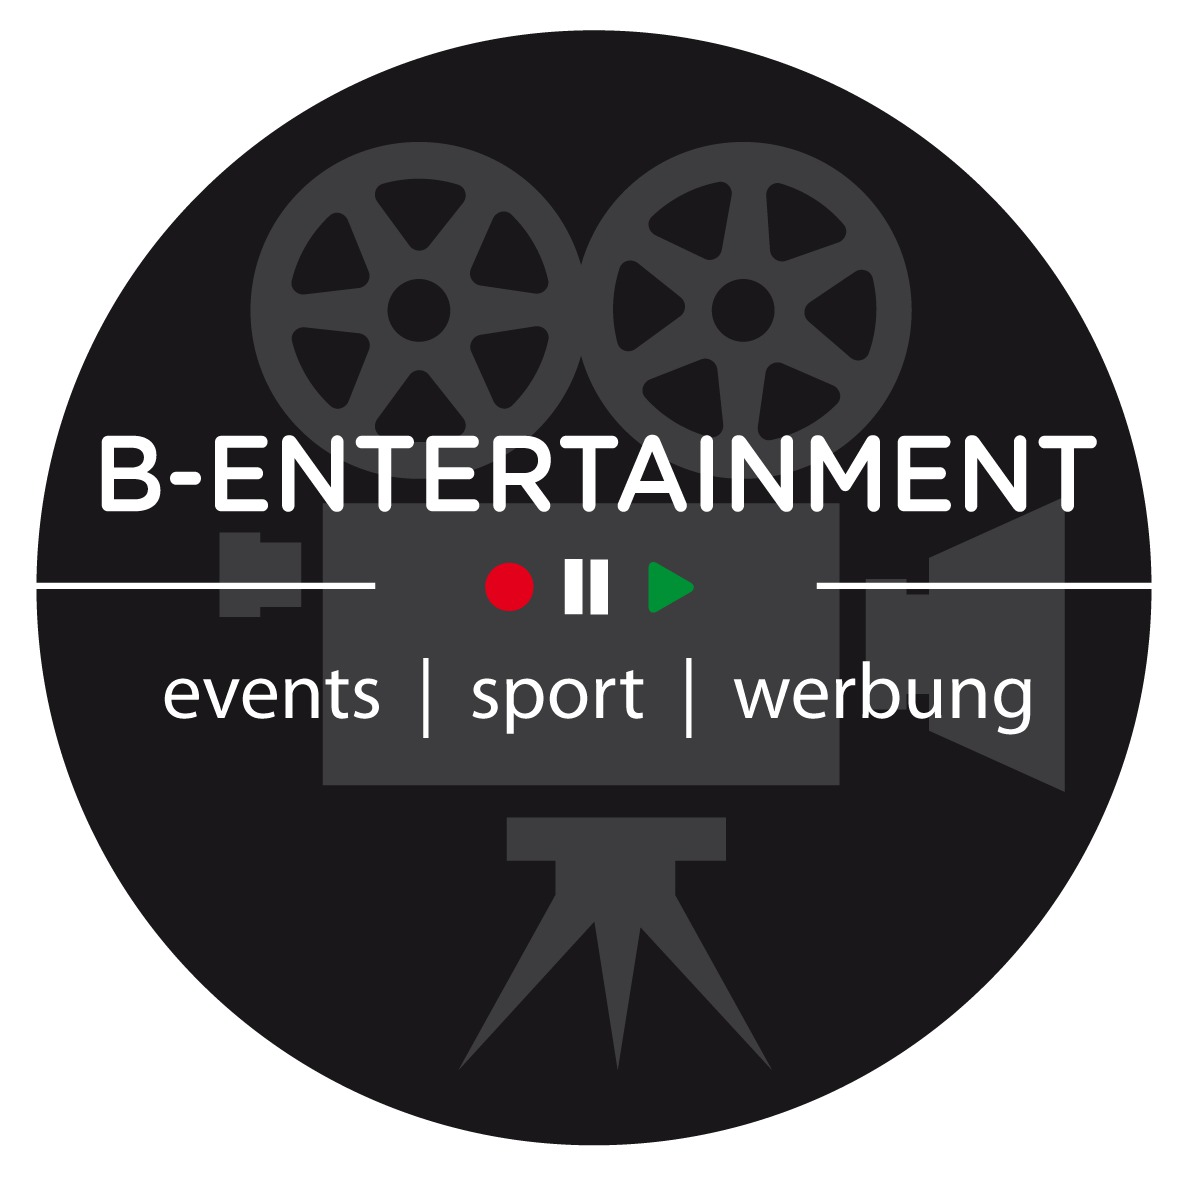 b-entertainment